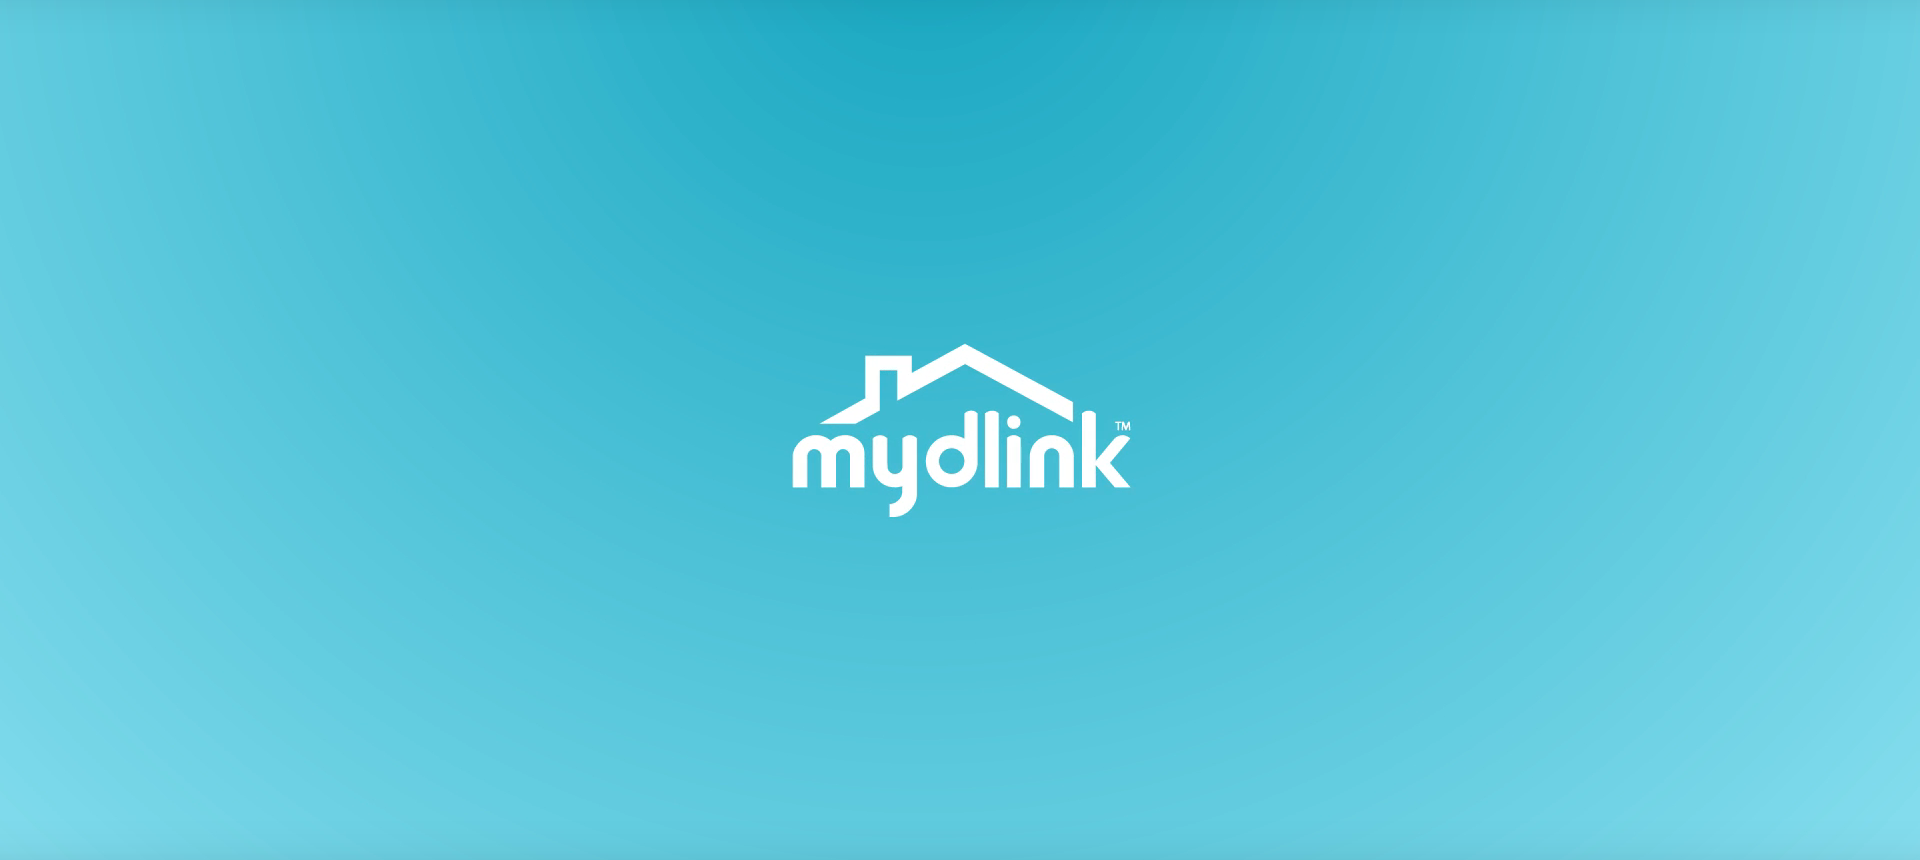 mydlink video introduction